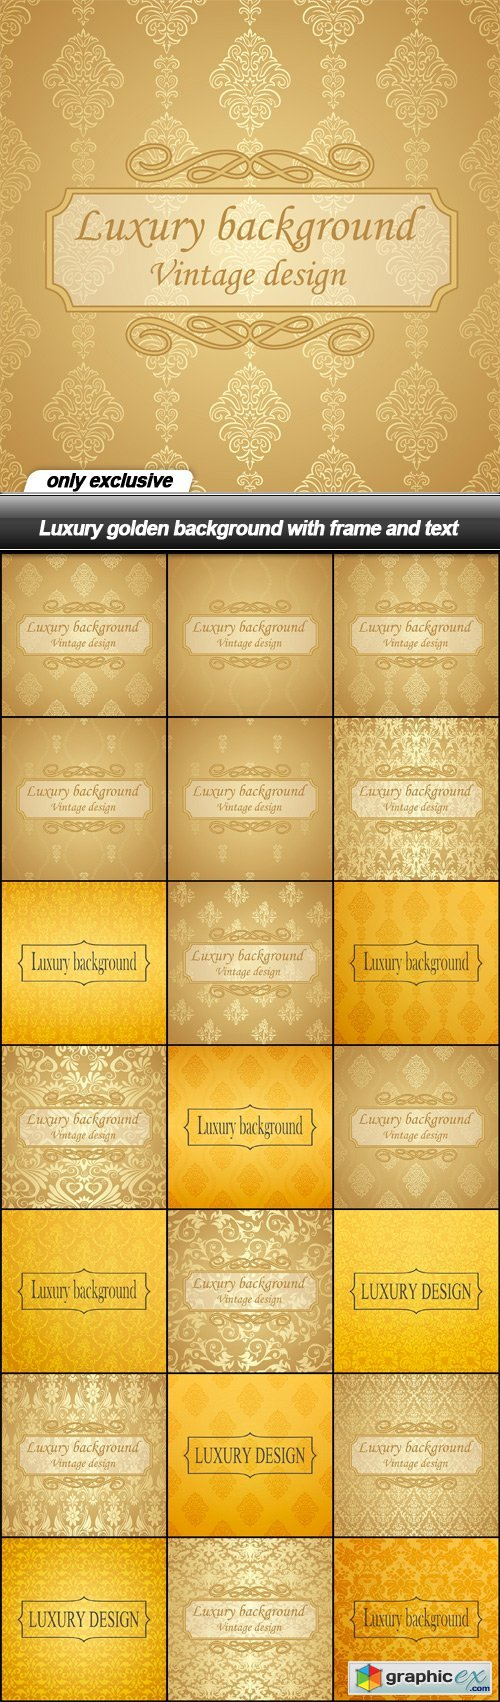 Luxury golden background with frame and text - 21 EPS